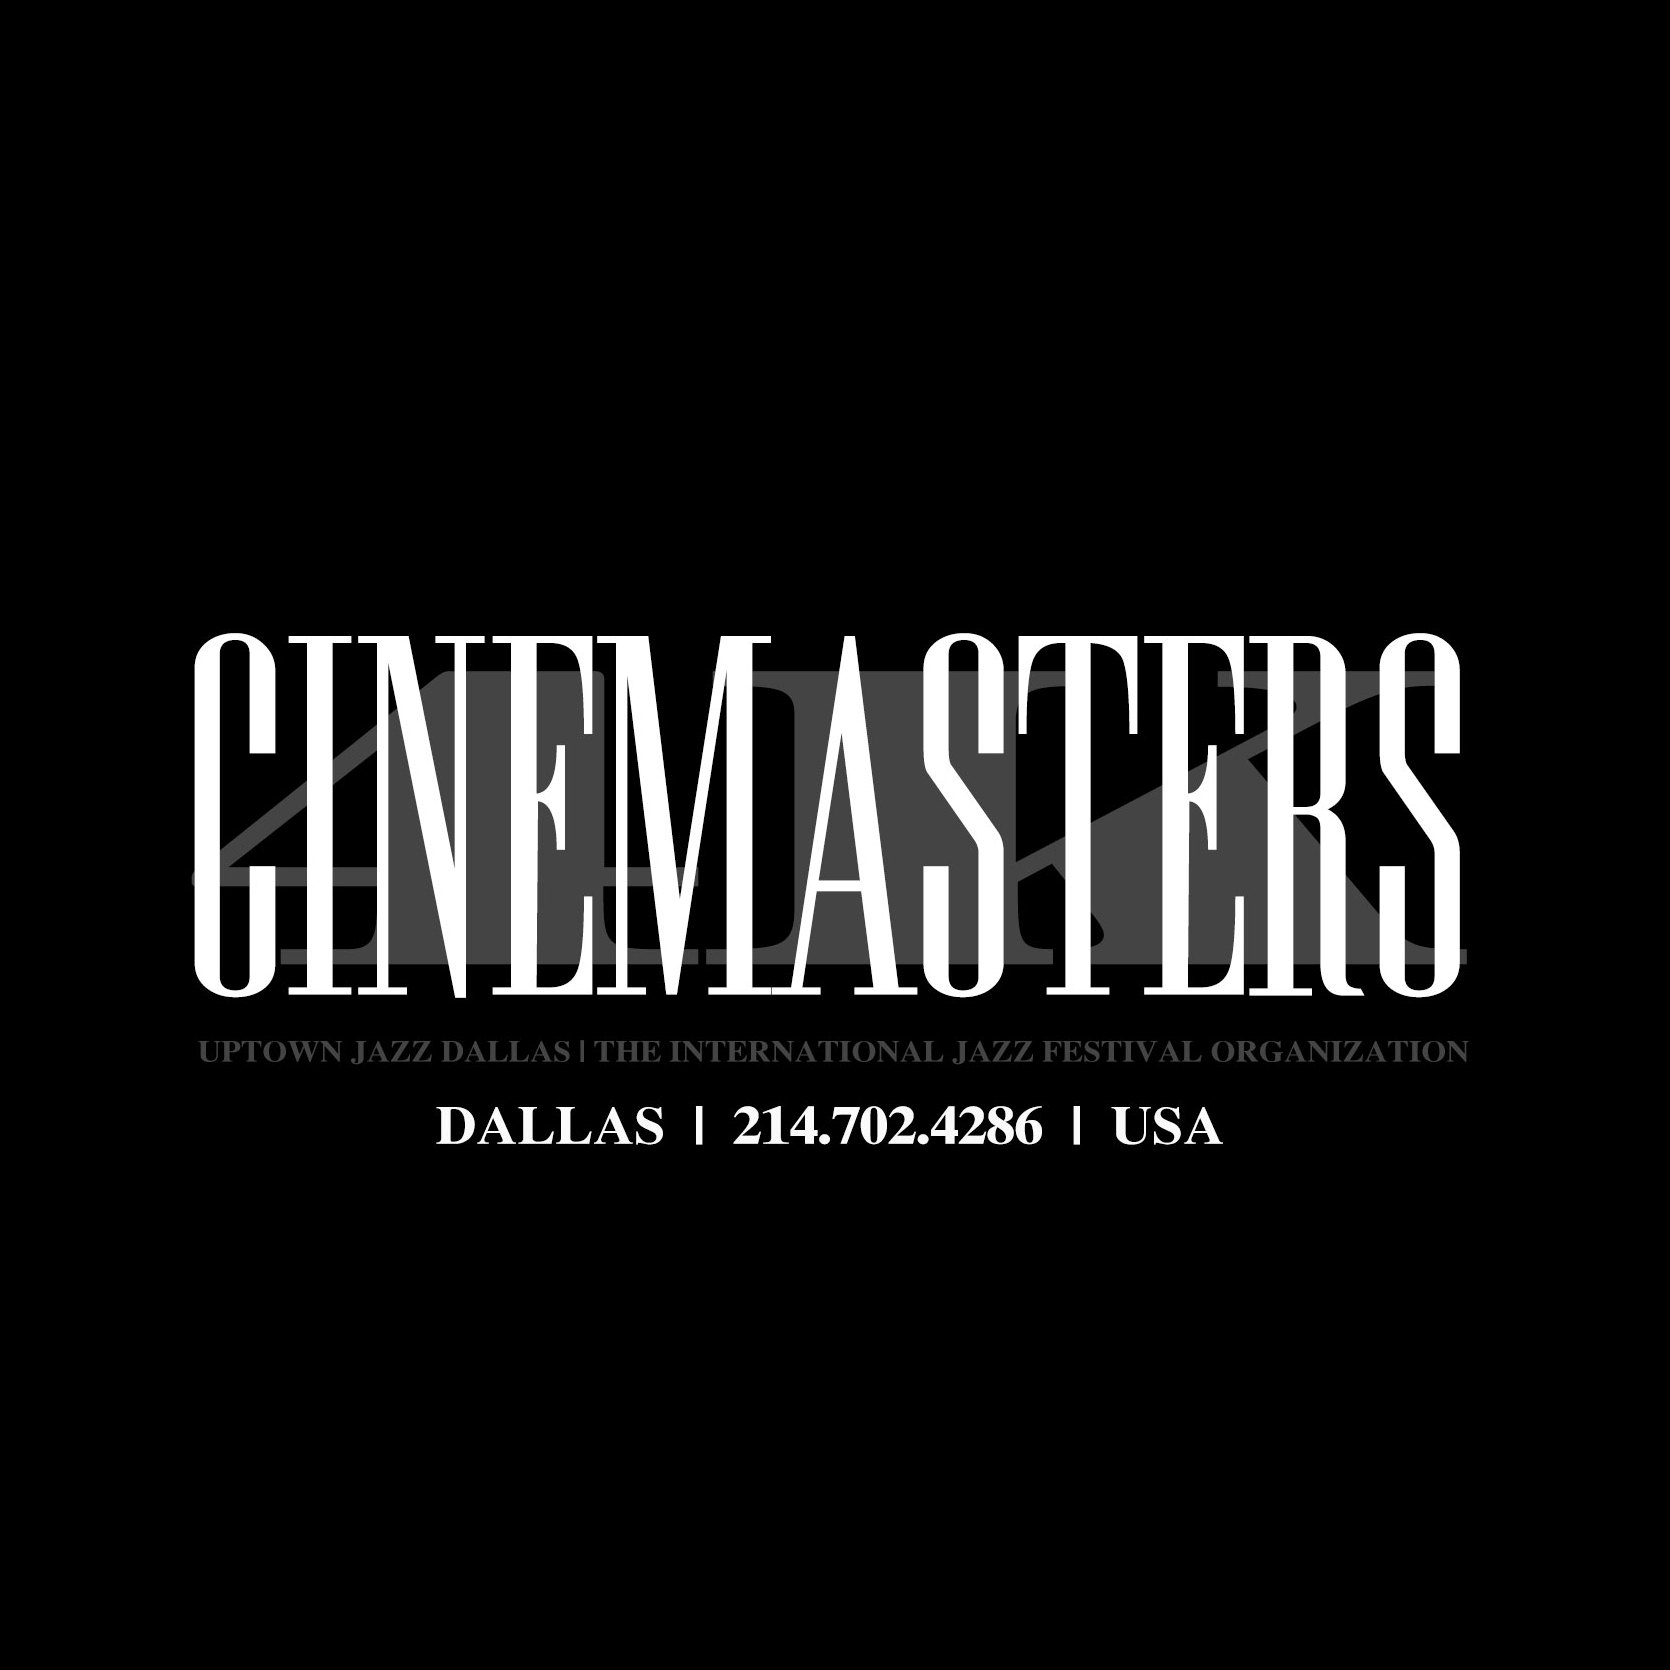 CINEMASTERS North America